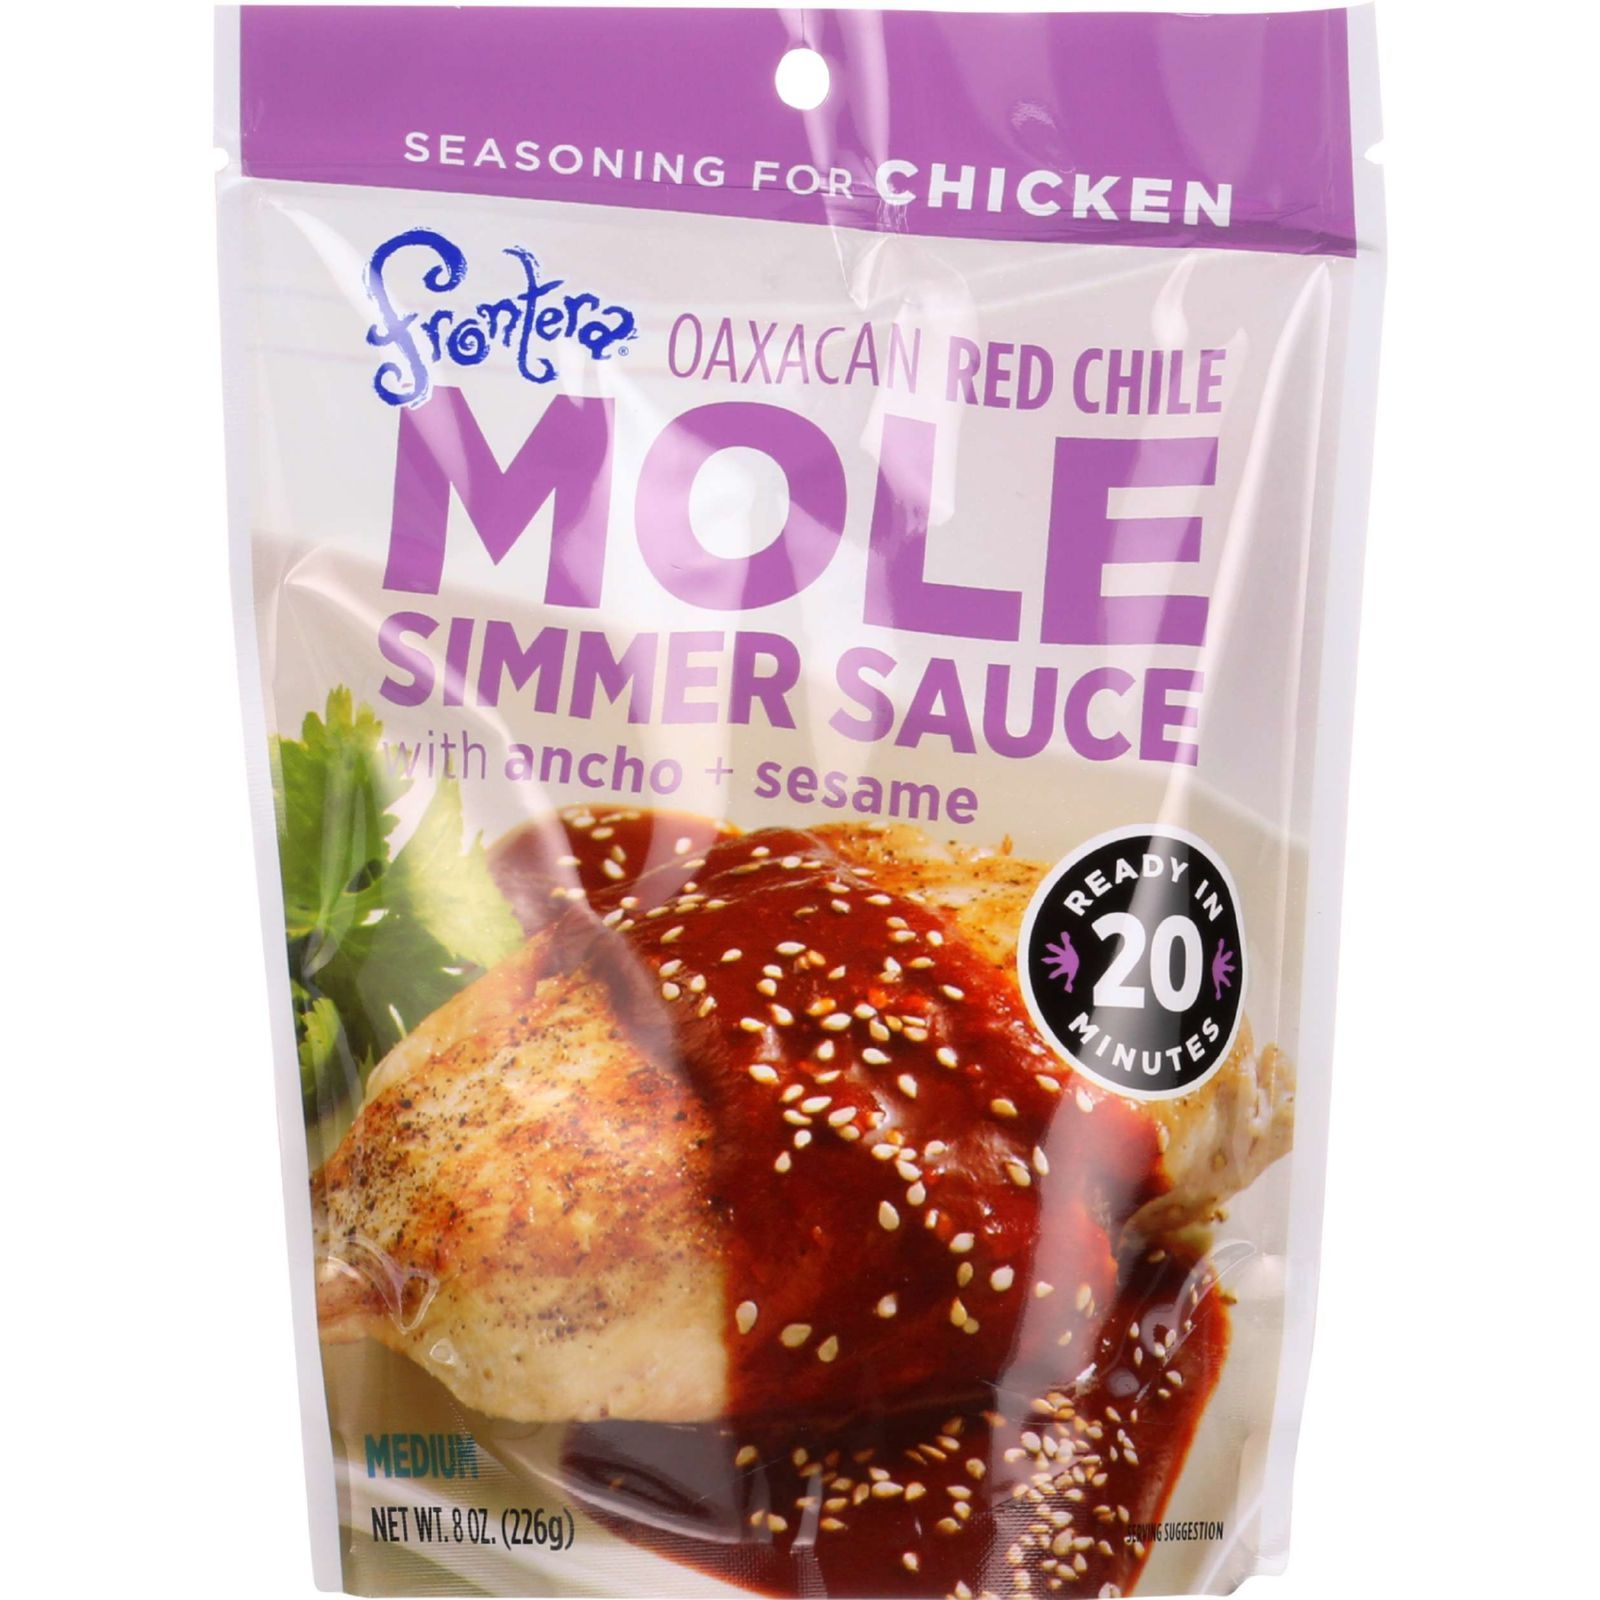 Frontera Foods Simmer Sauce - Oaxacan Red Chile Mole - with Ancho and Sesame - 8 oz - case of 6